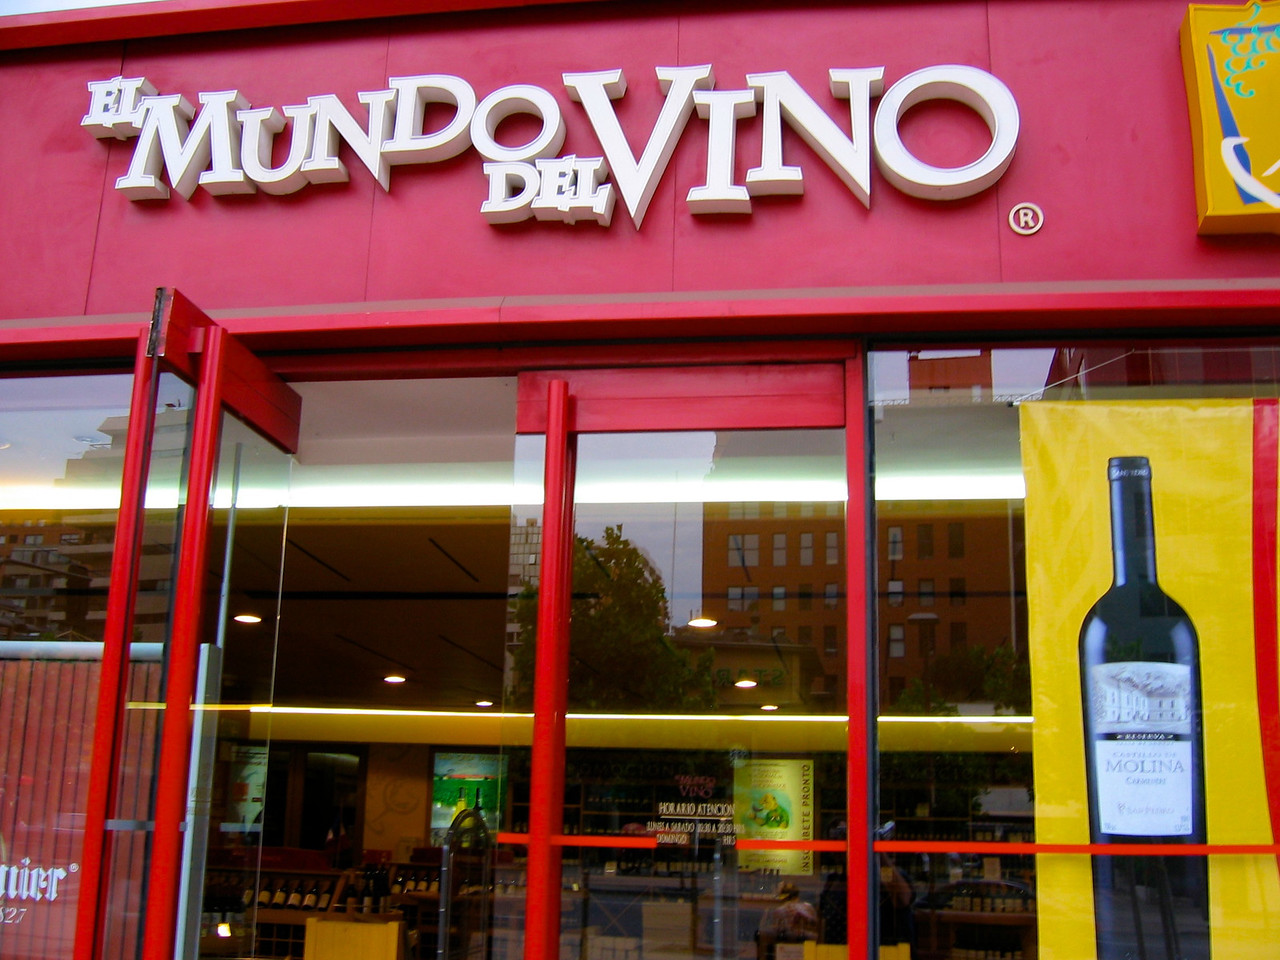 El Mundo del Vino is a small chain of wine stores in Santiago with a wide selection of South American wines.